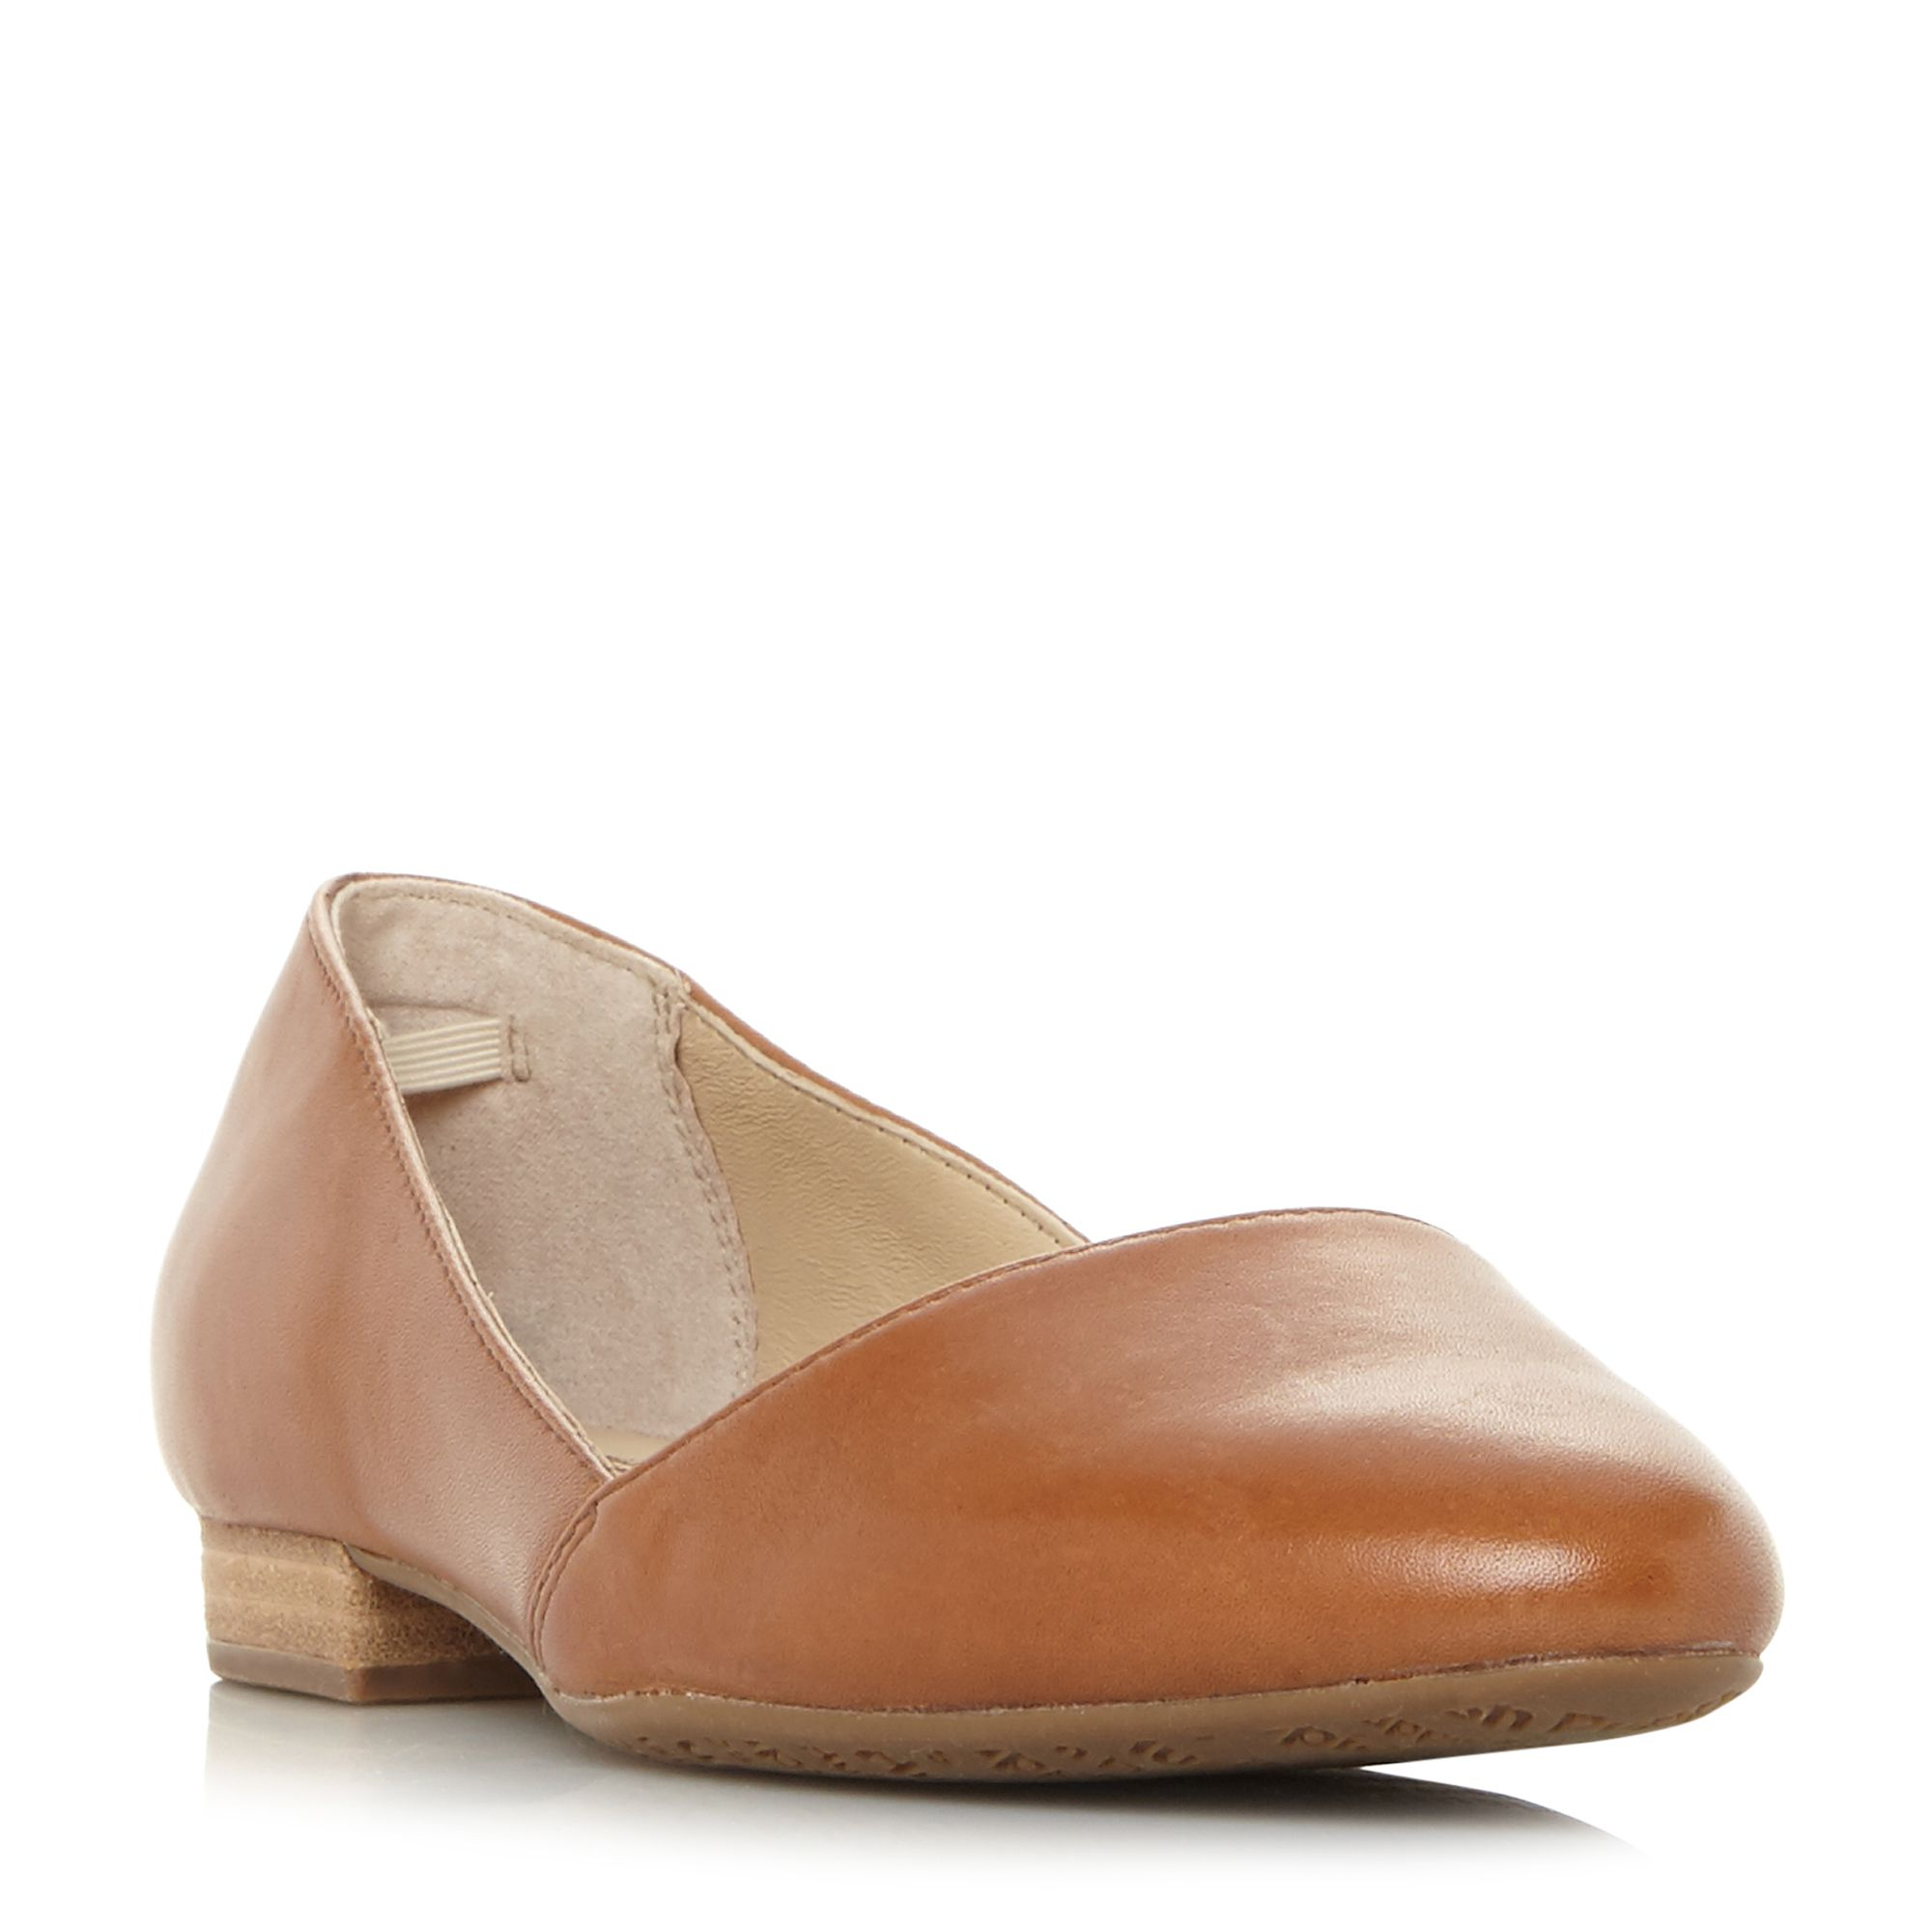 Hush Puppies Jovanna Phoebe Leather Pump Shoes, Tan